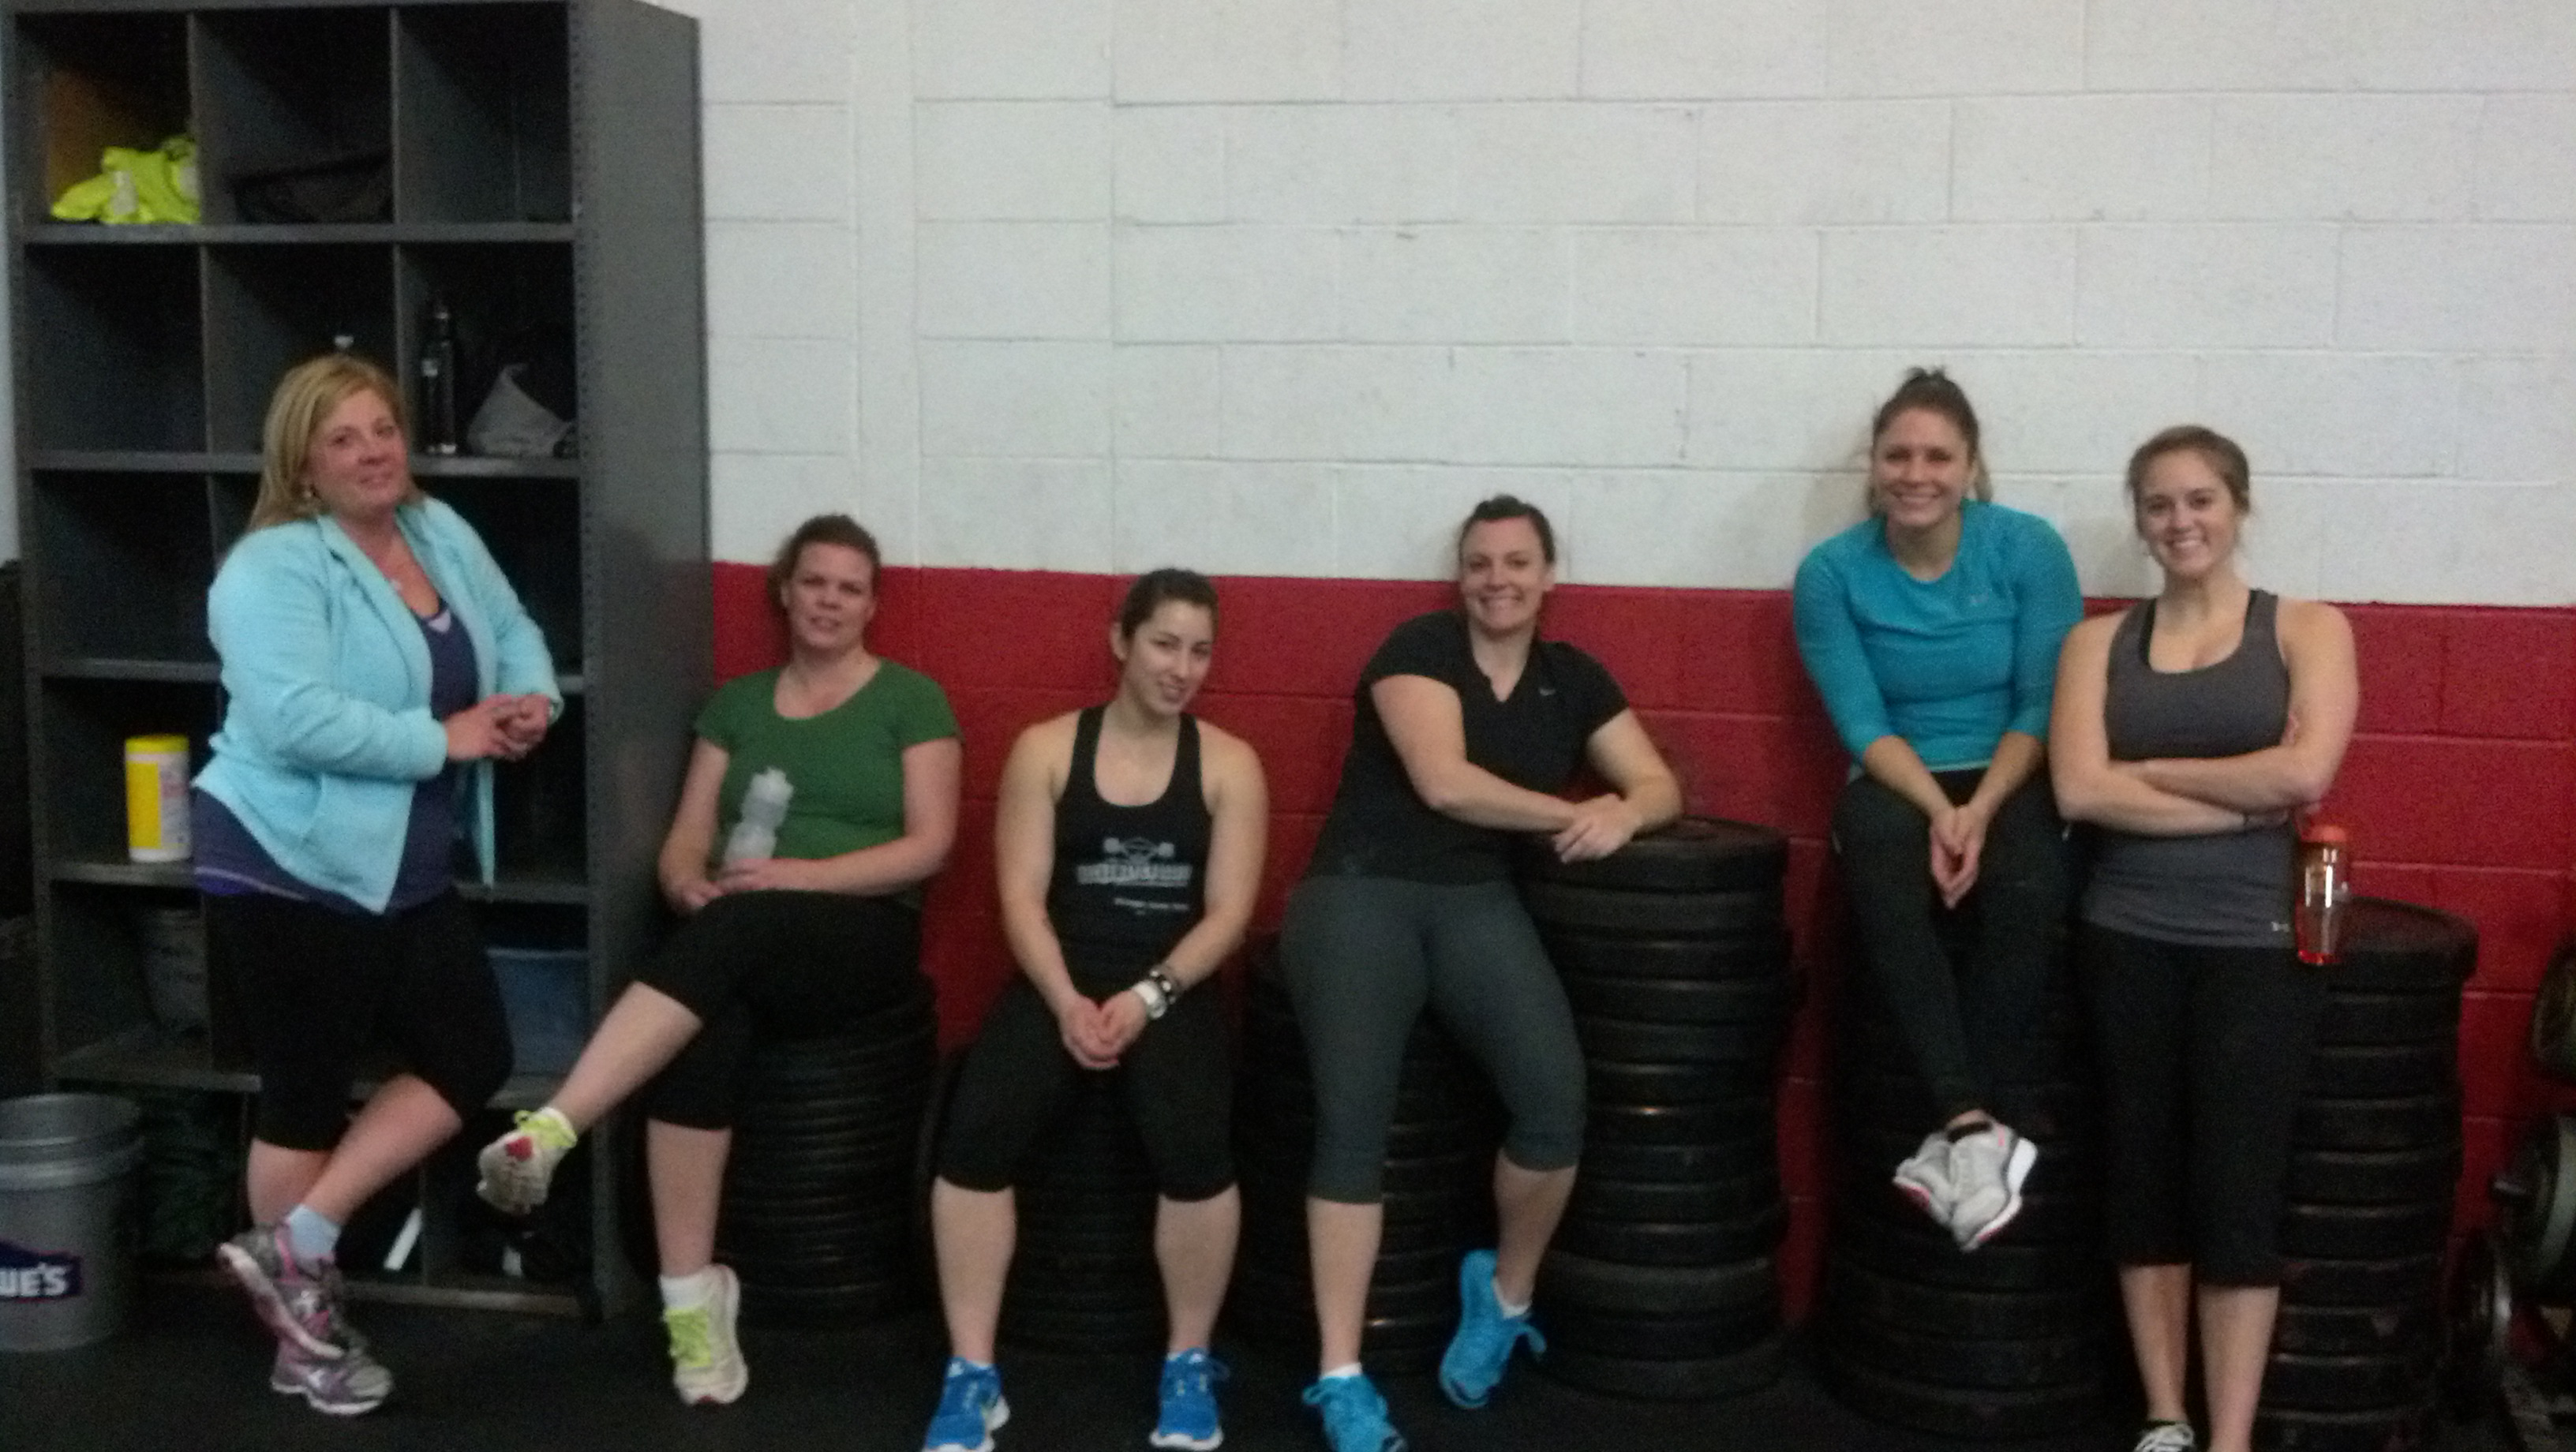 Saturday, March 30 WOD